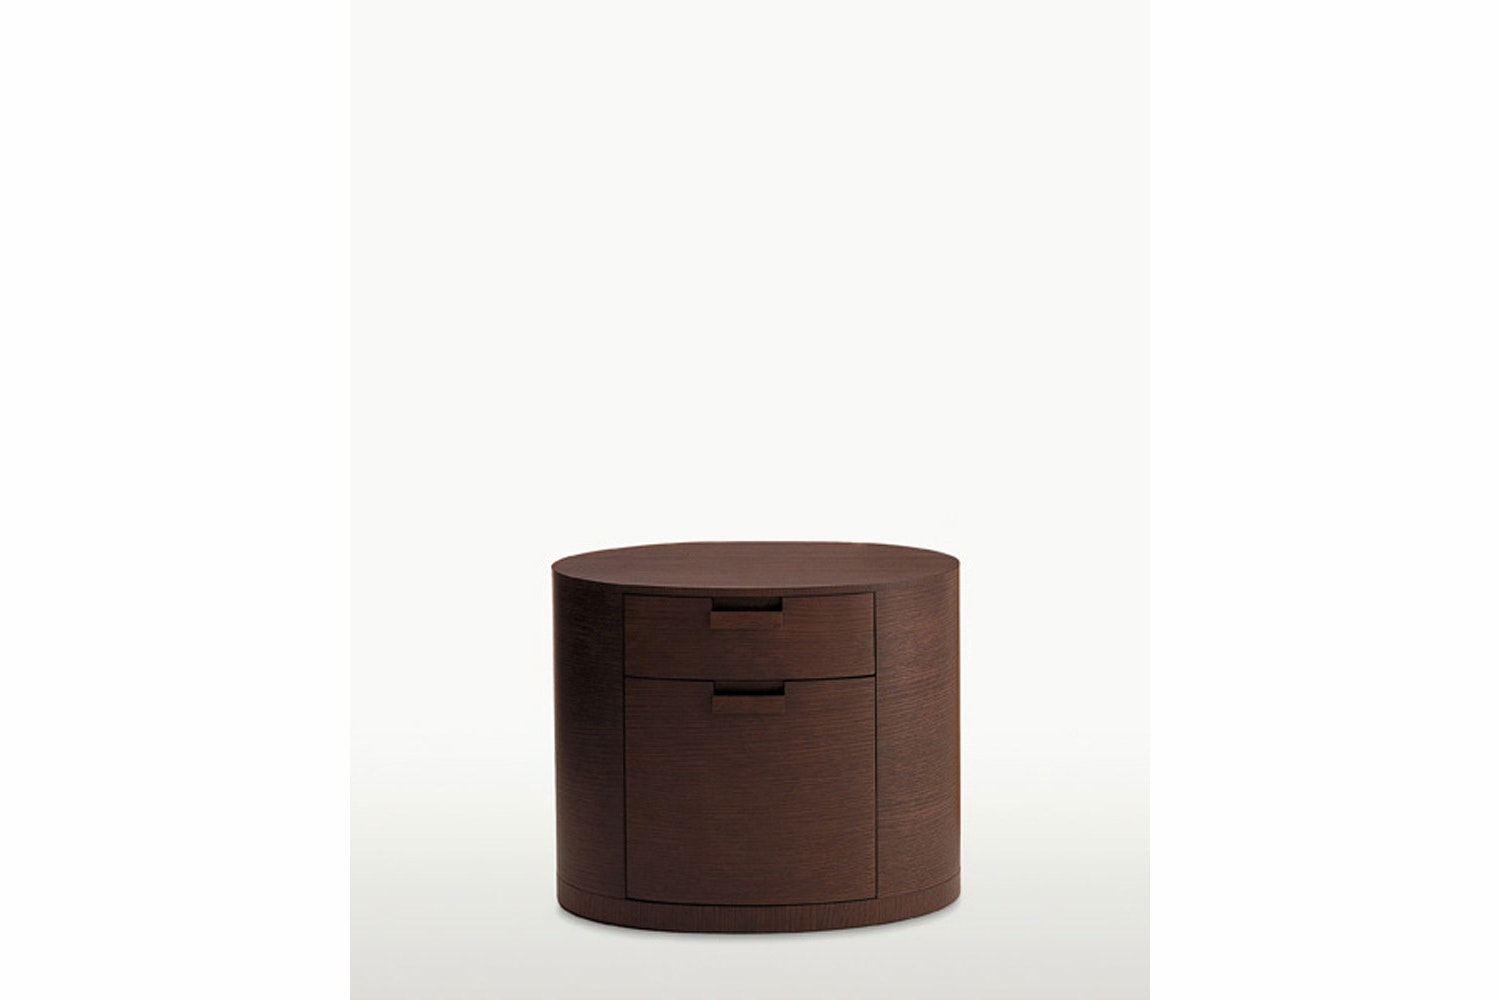 Amphora Smoked Oak Bedside Table by Antonio Citterio for Maxalto